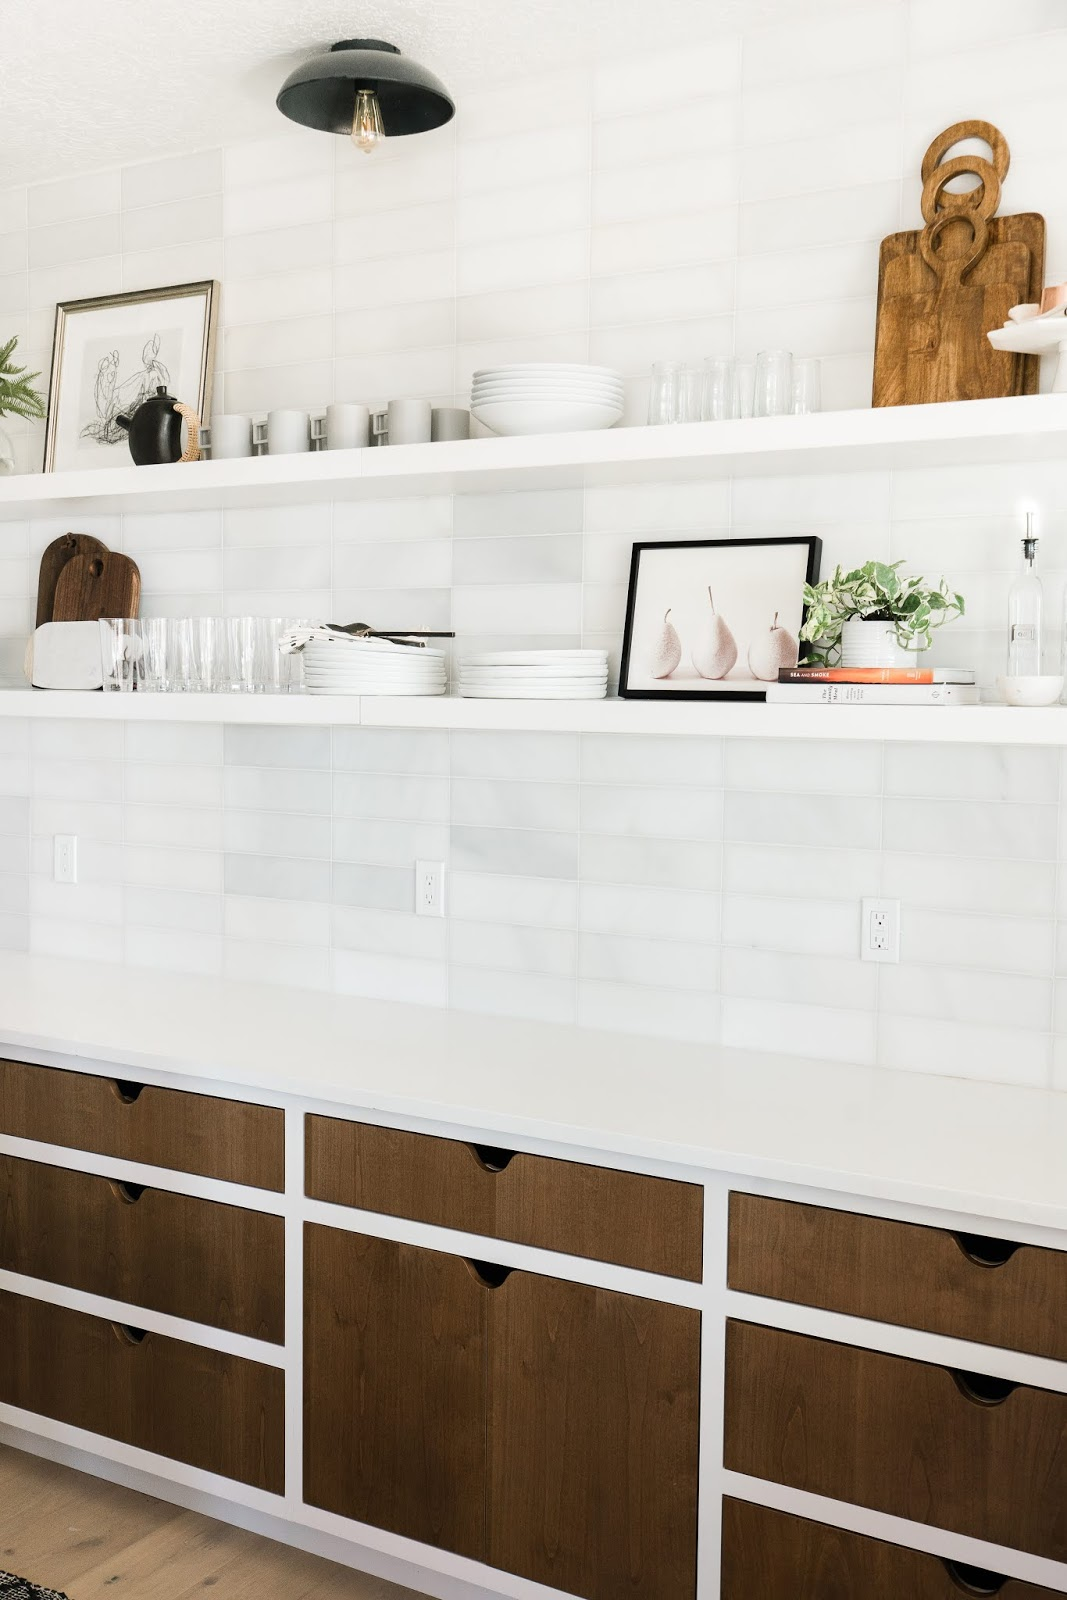 White Backsplash, Wood Cabinets, Modern Pantry